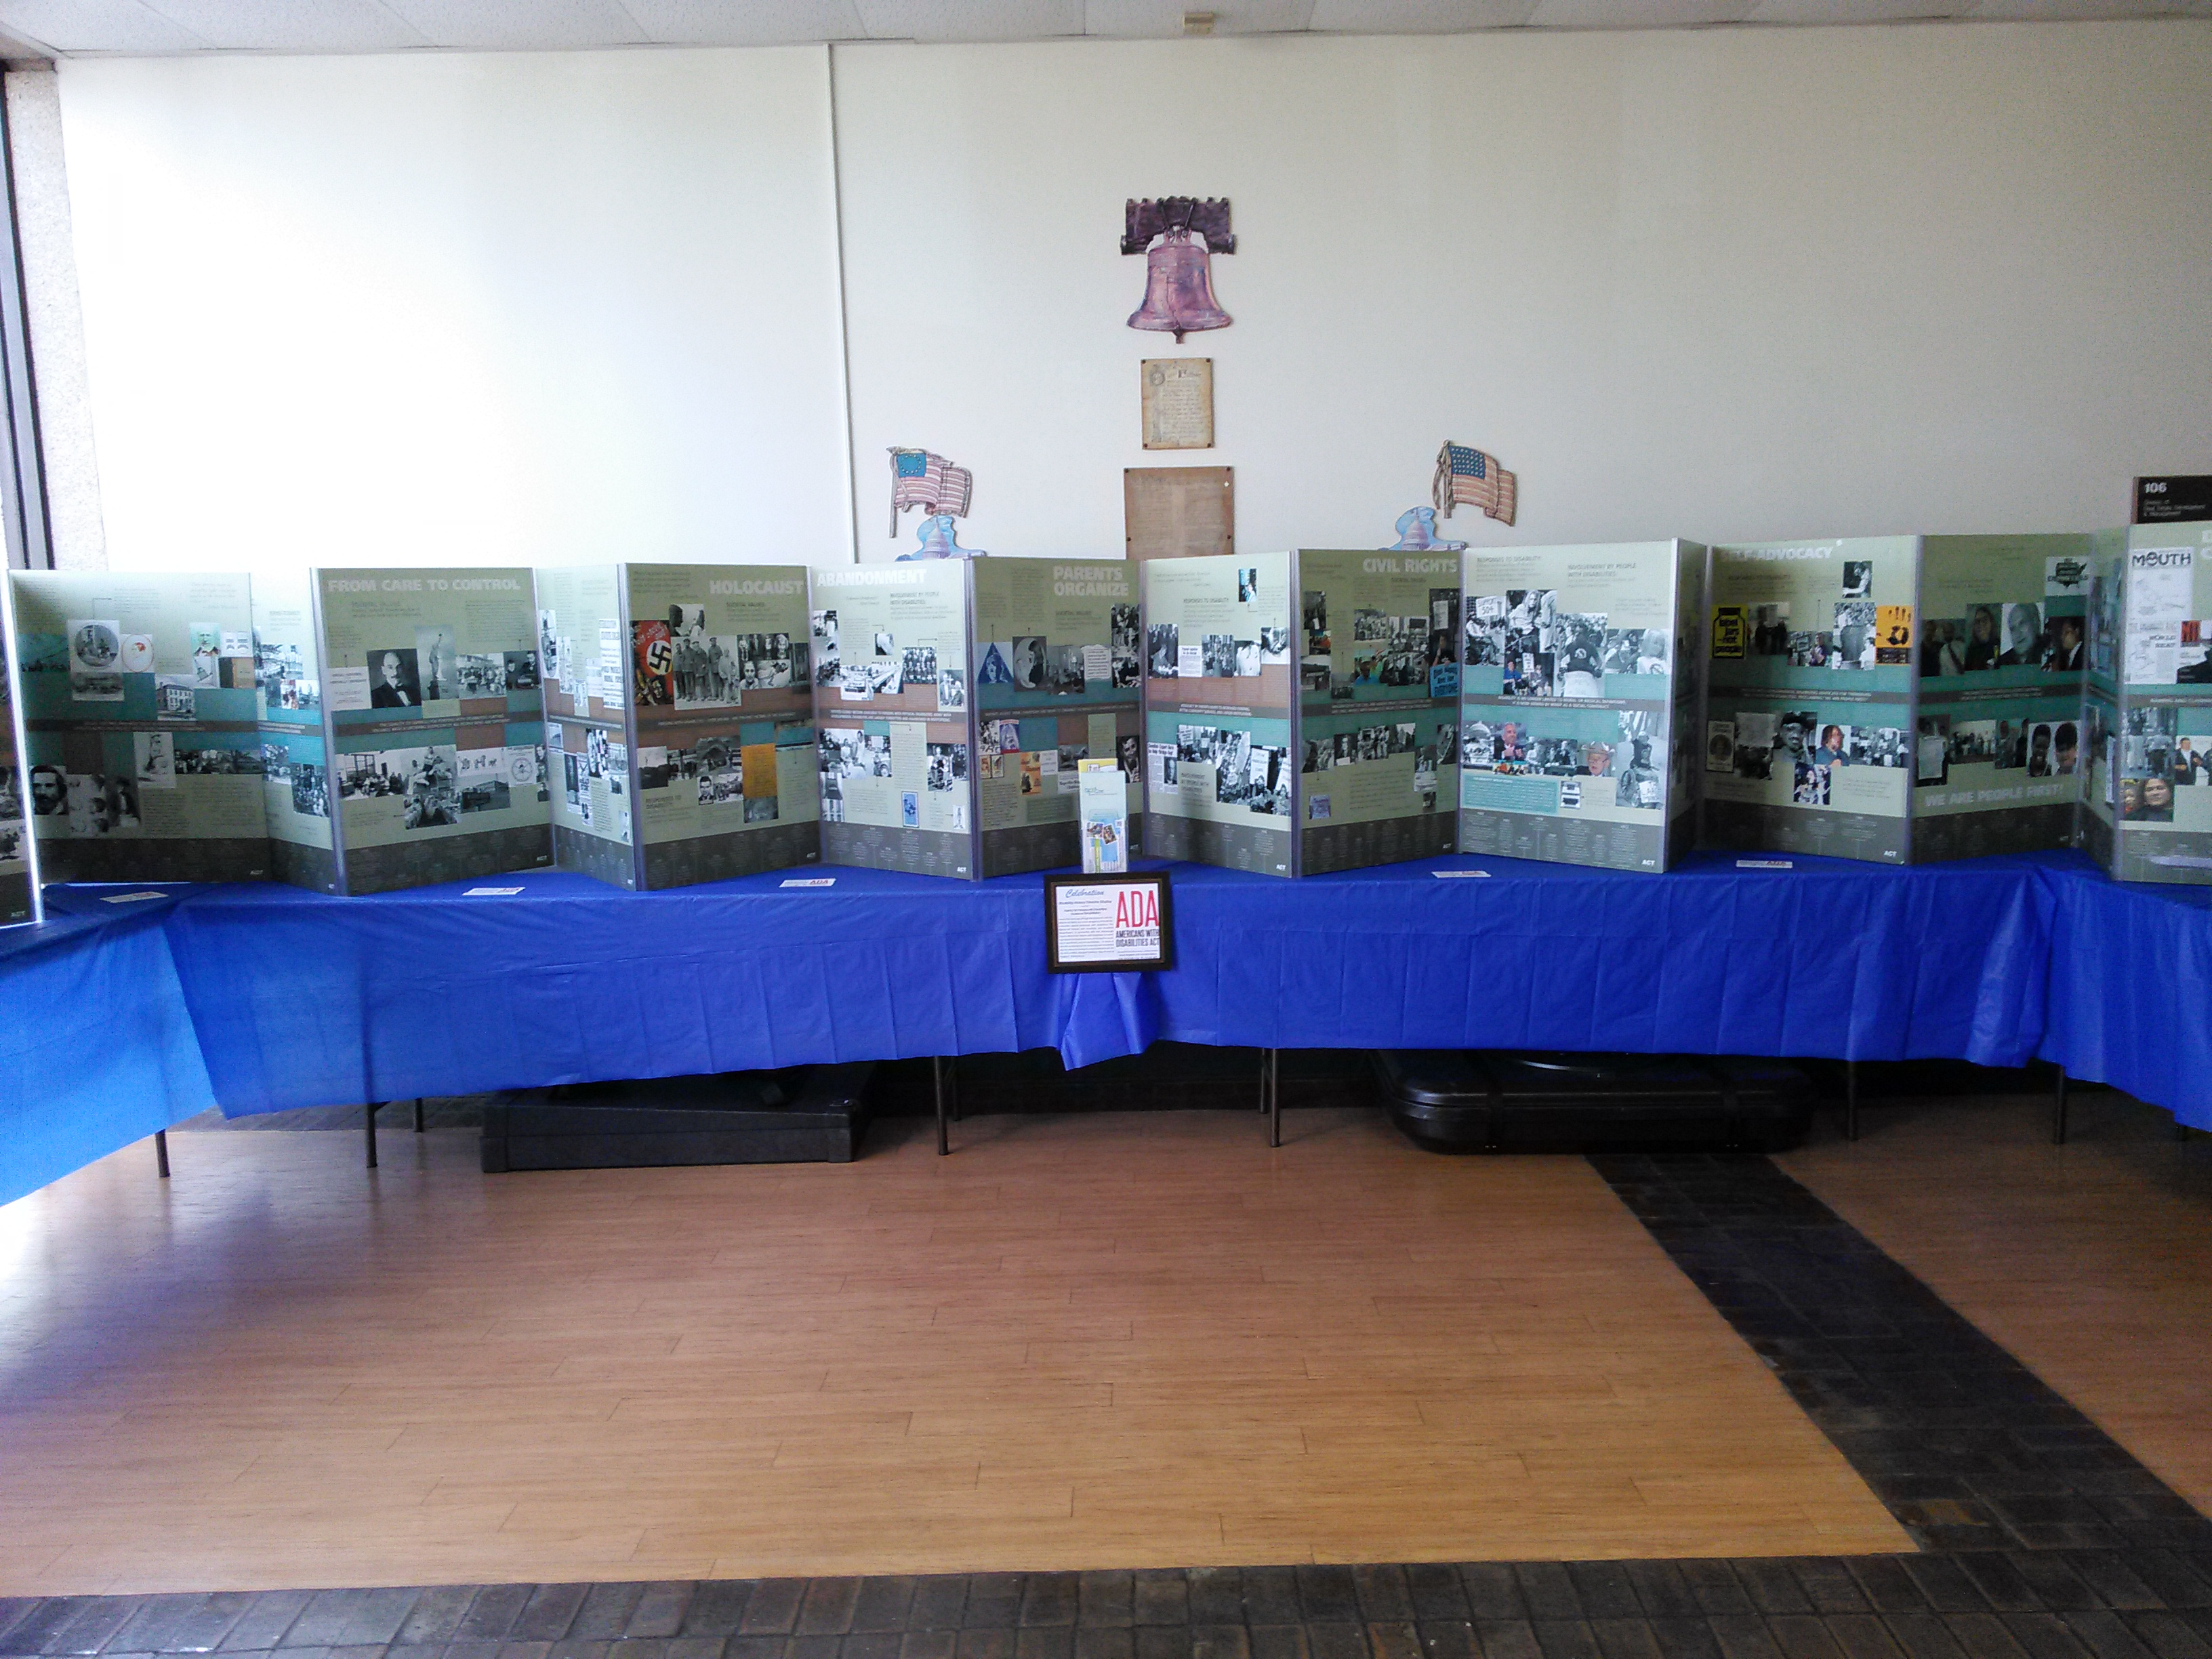 The Disability History Timeline display.